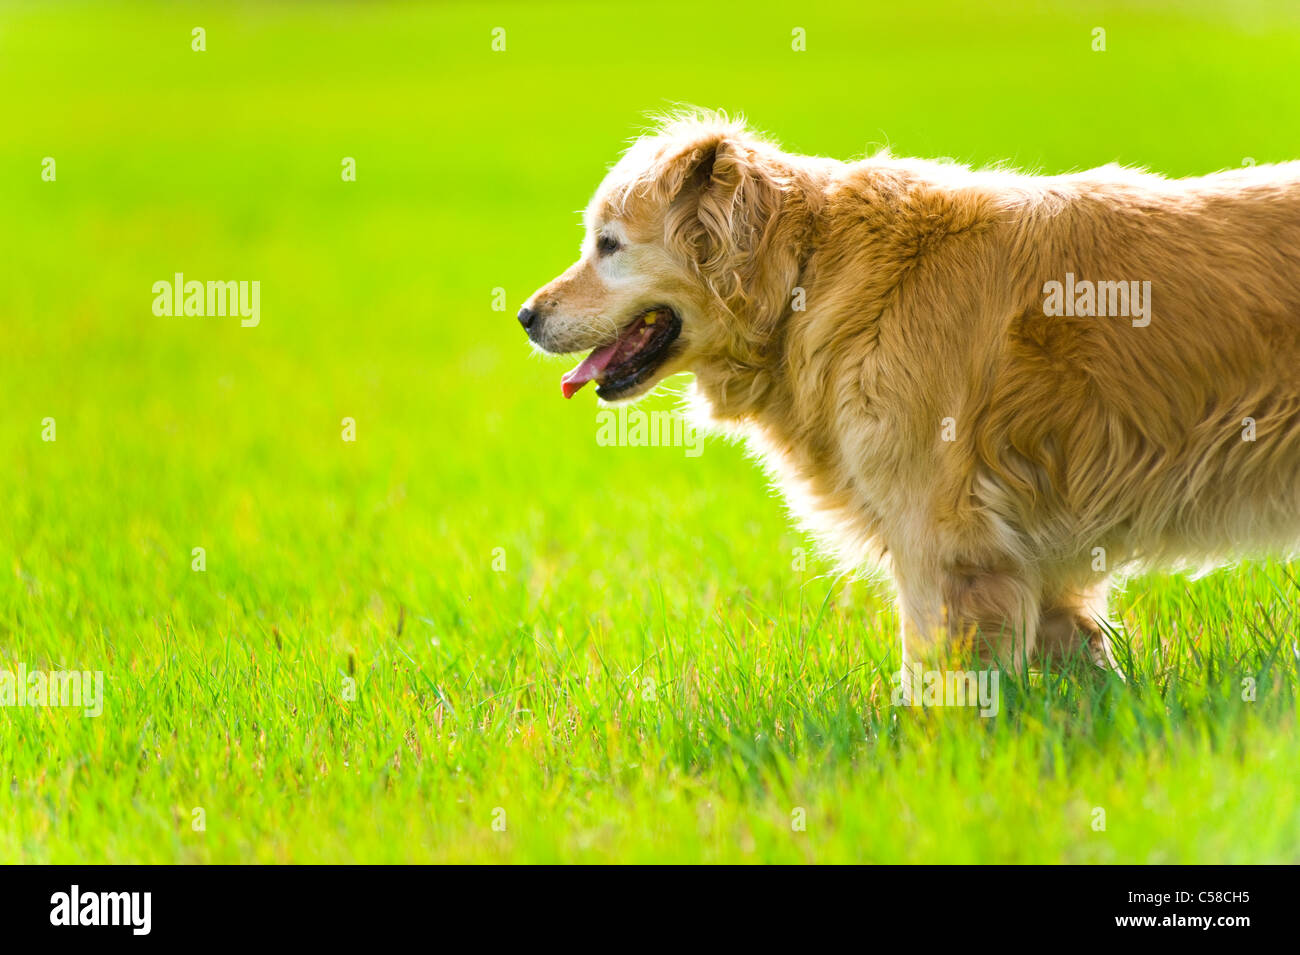 A beautiful, elegant, old, female golden retriever standing in a field in the evening sun light - Stock Image